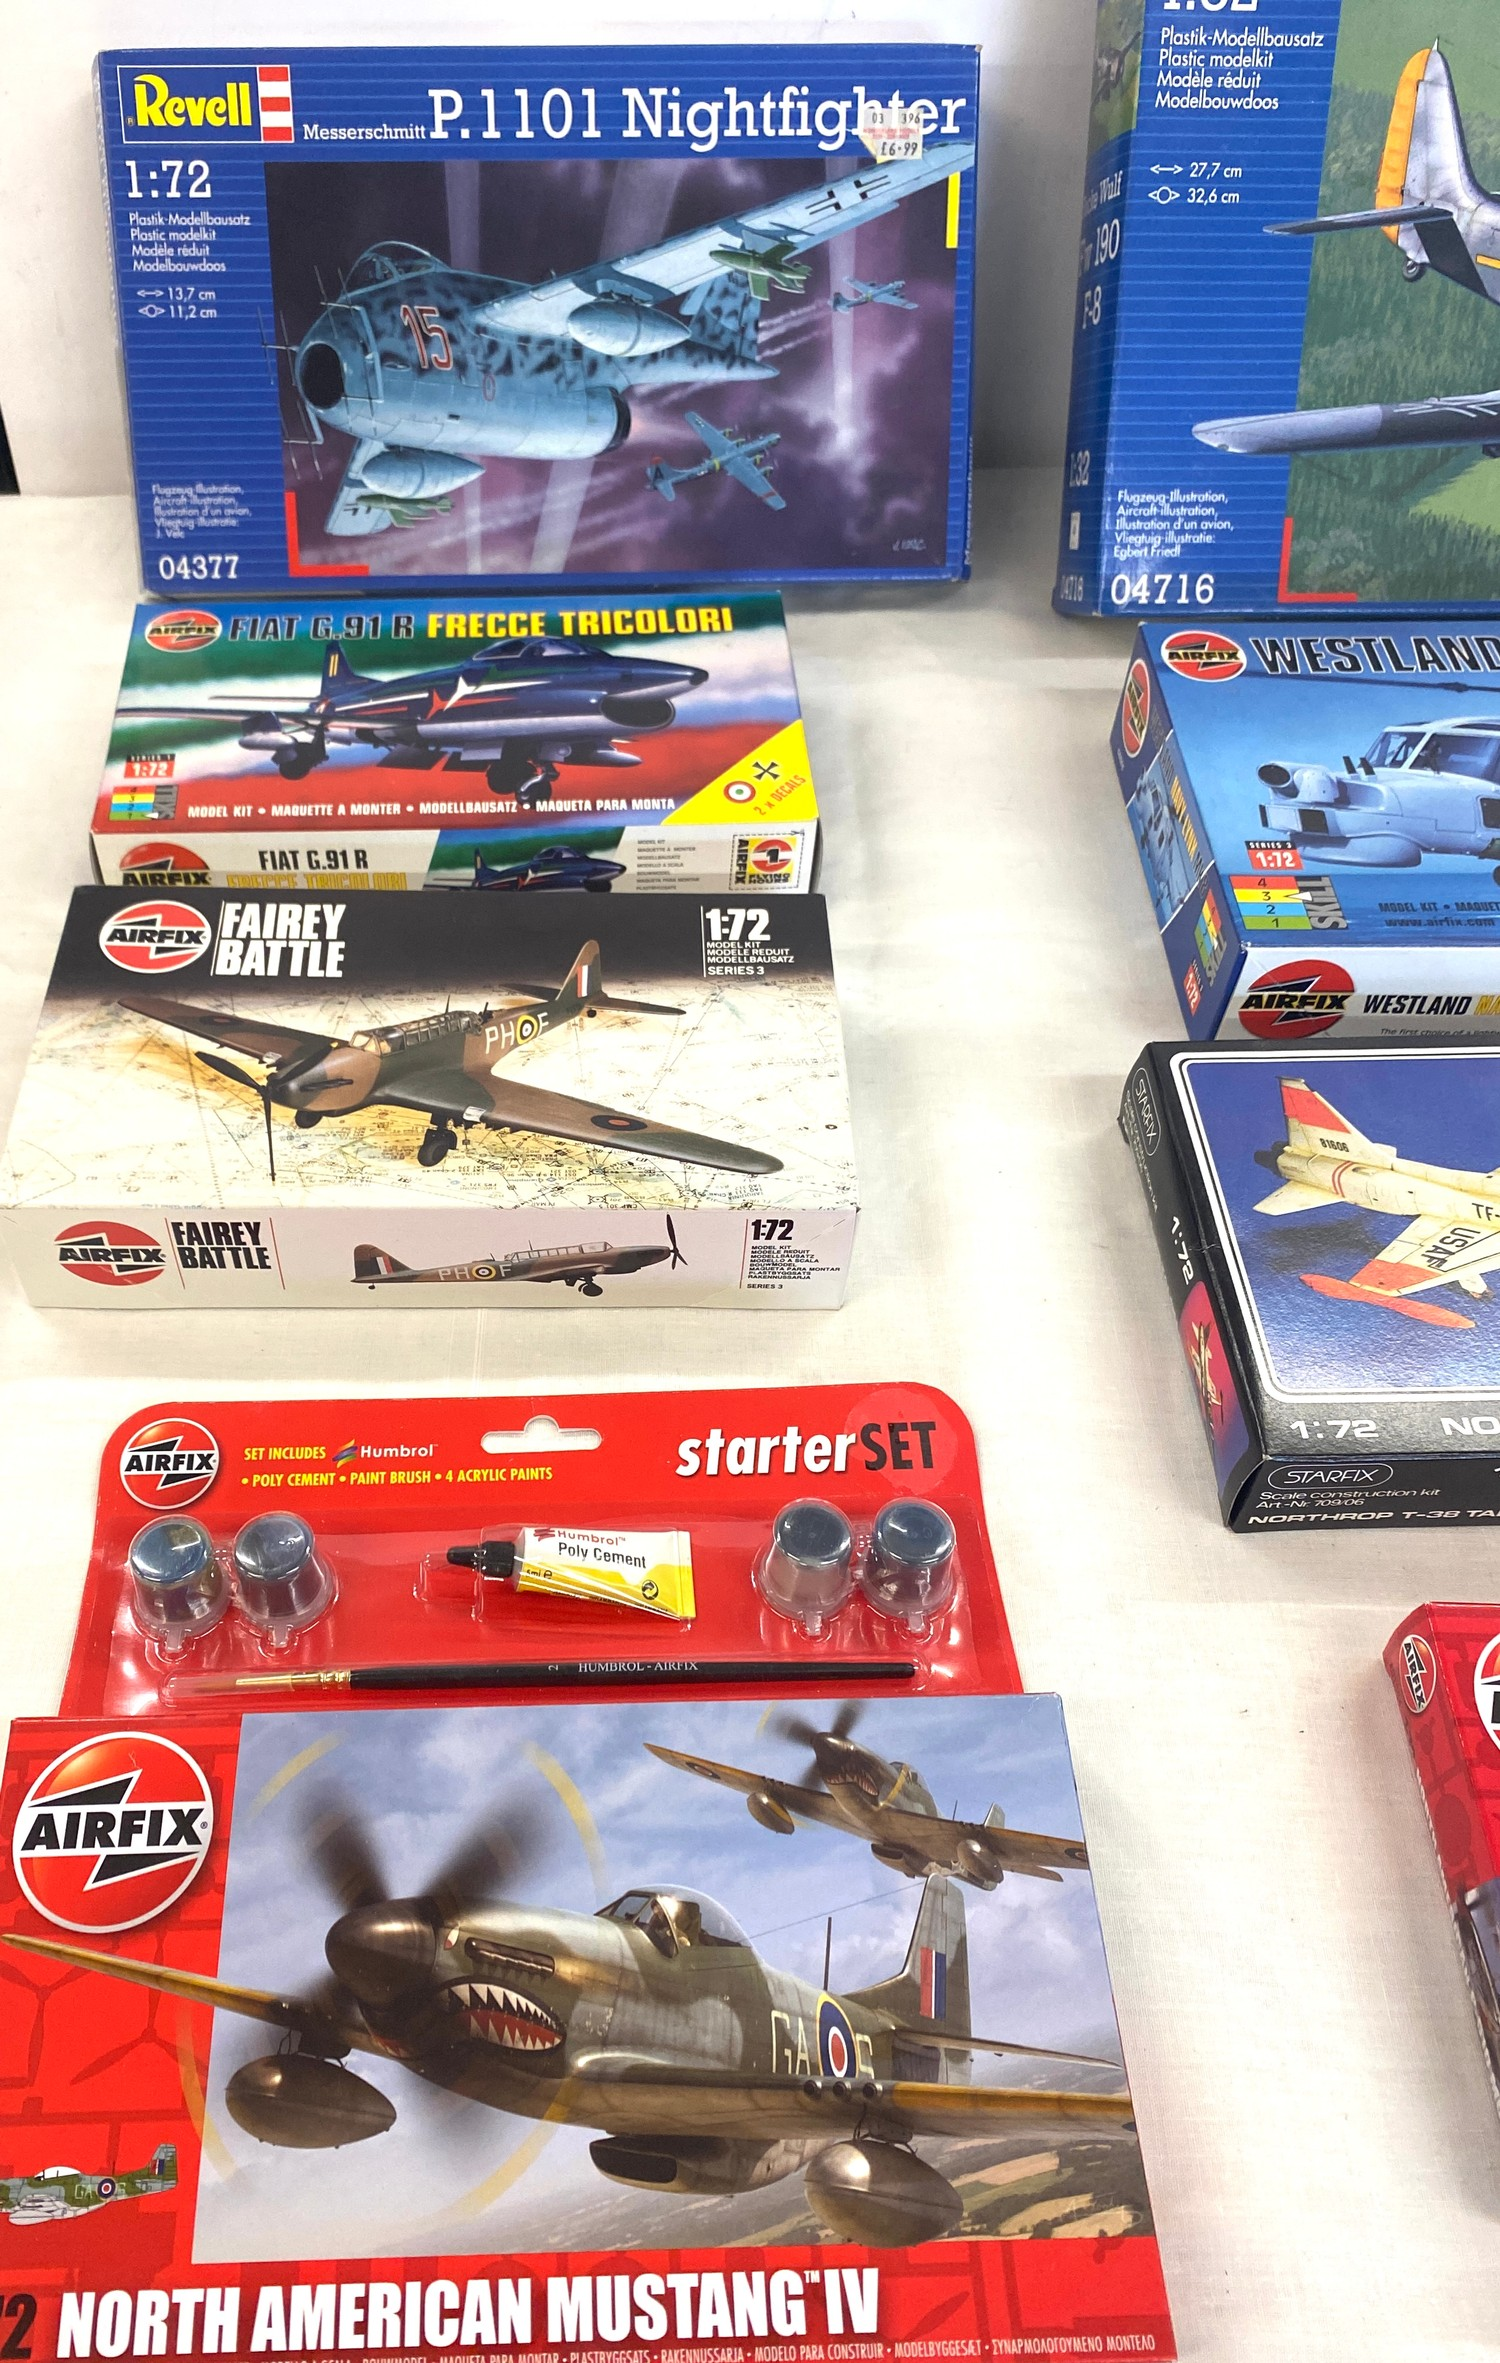 Selection of 8 boxed airfix models to include, Revell, P.1101 nightfighter, Focke Wulf FW 190, - Image 2 of 3